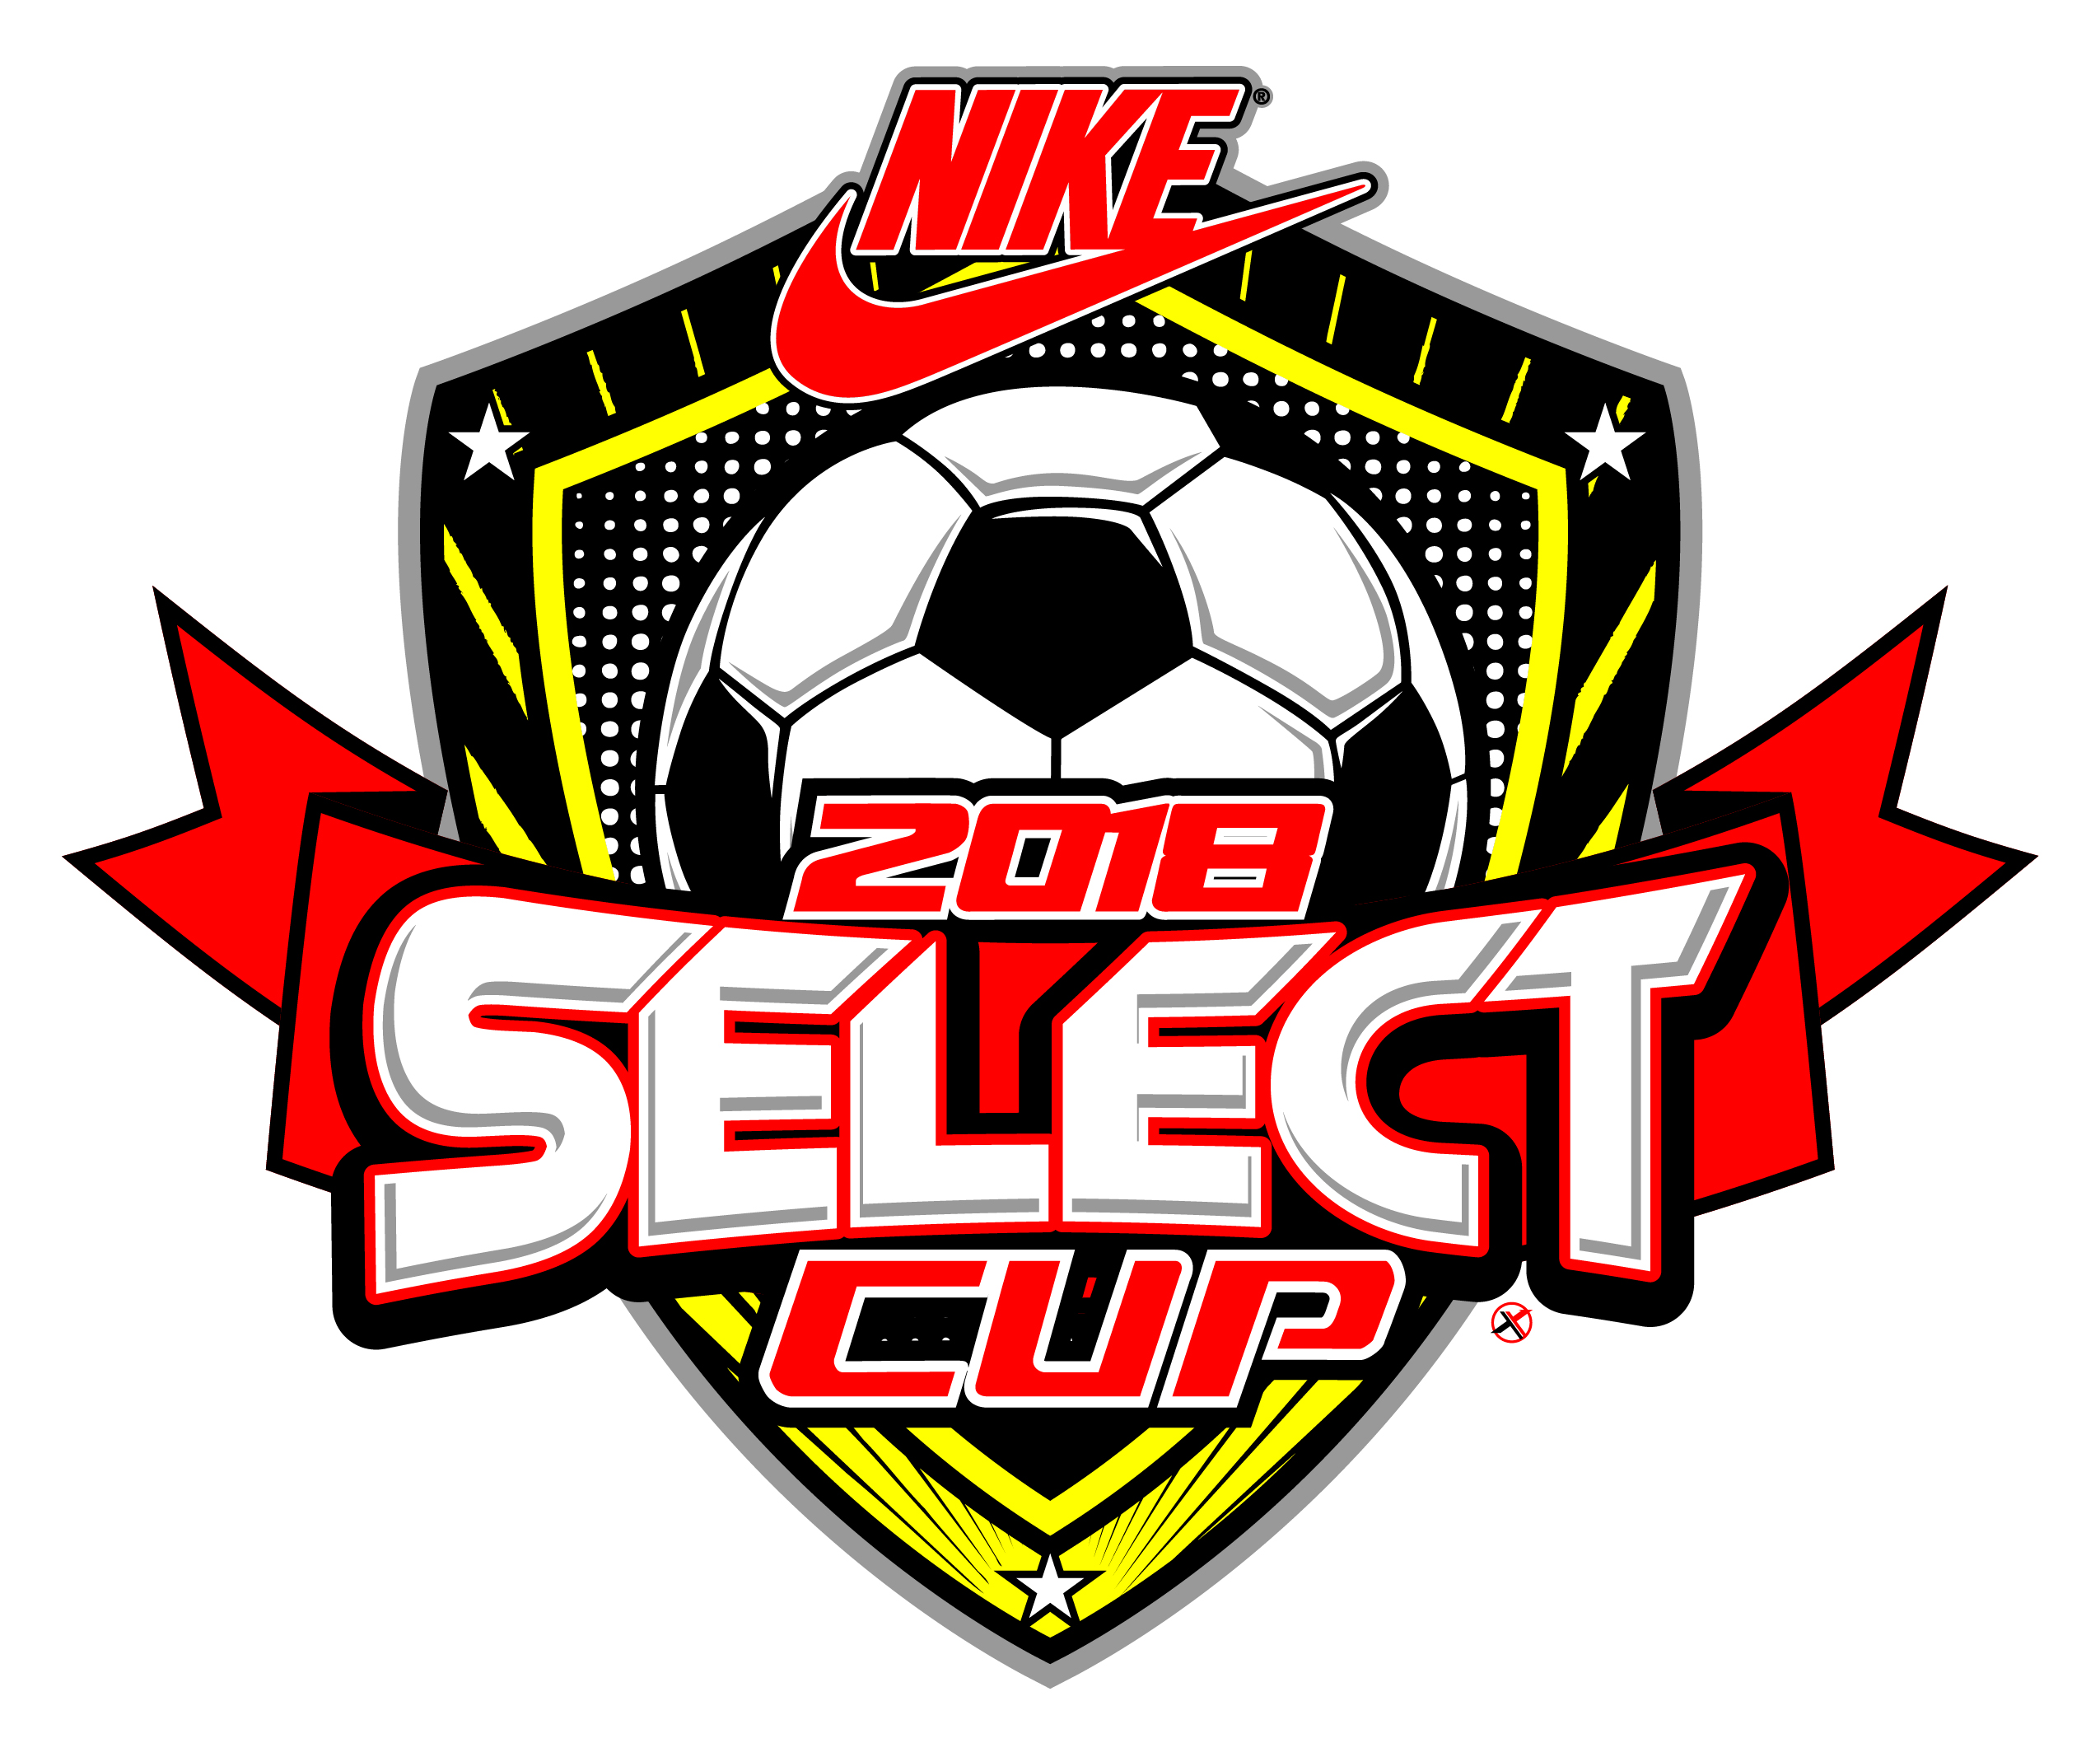 0aabb63f02ea Welcome to the sixth year of Concorde Fire's Nike Select Cup! Concorde Fire Soccer  Club of Metro Atlanta is pleased to invite your team to the beautiful ...